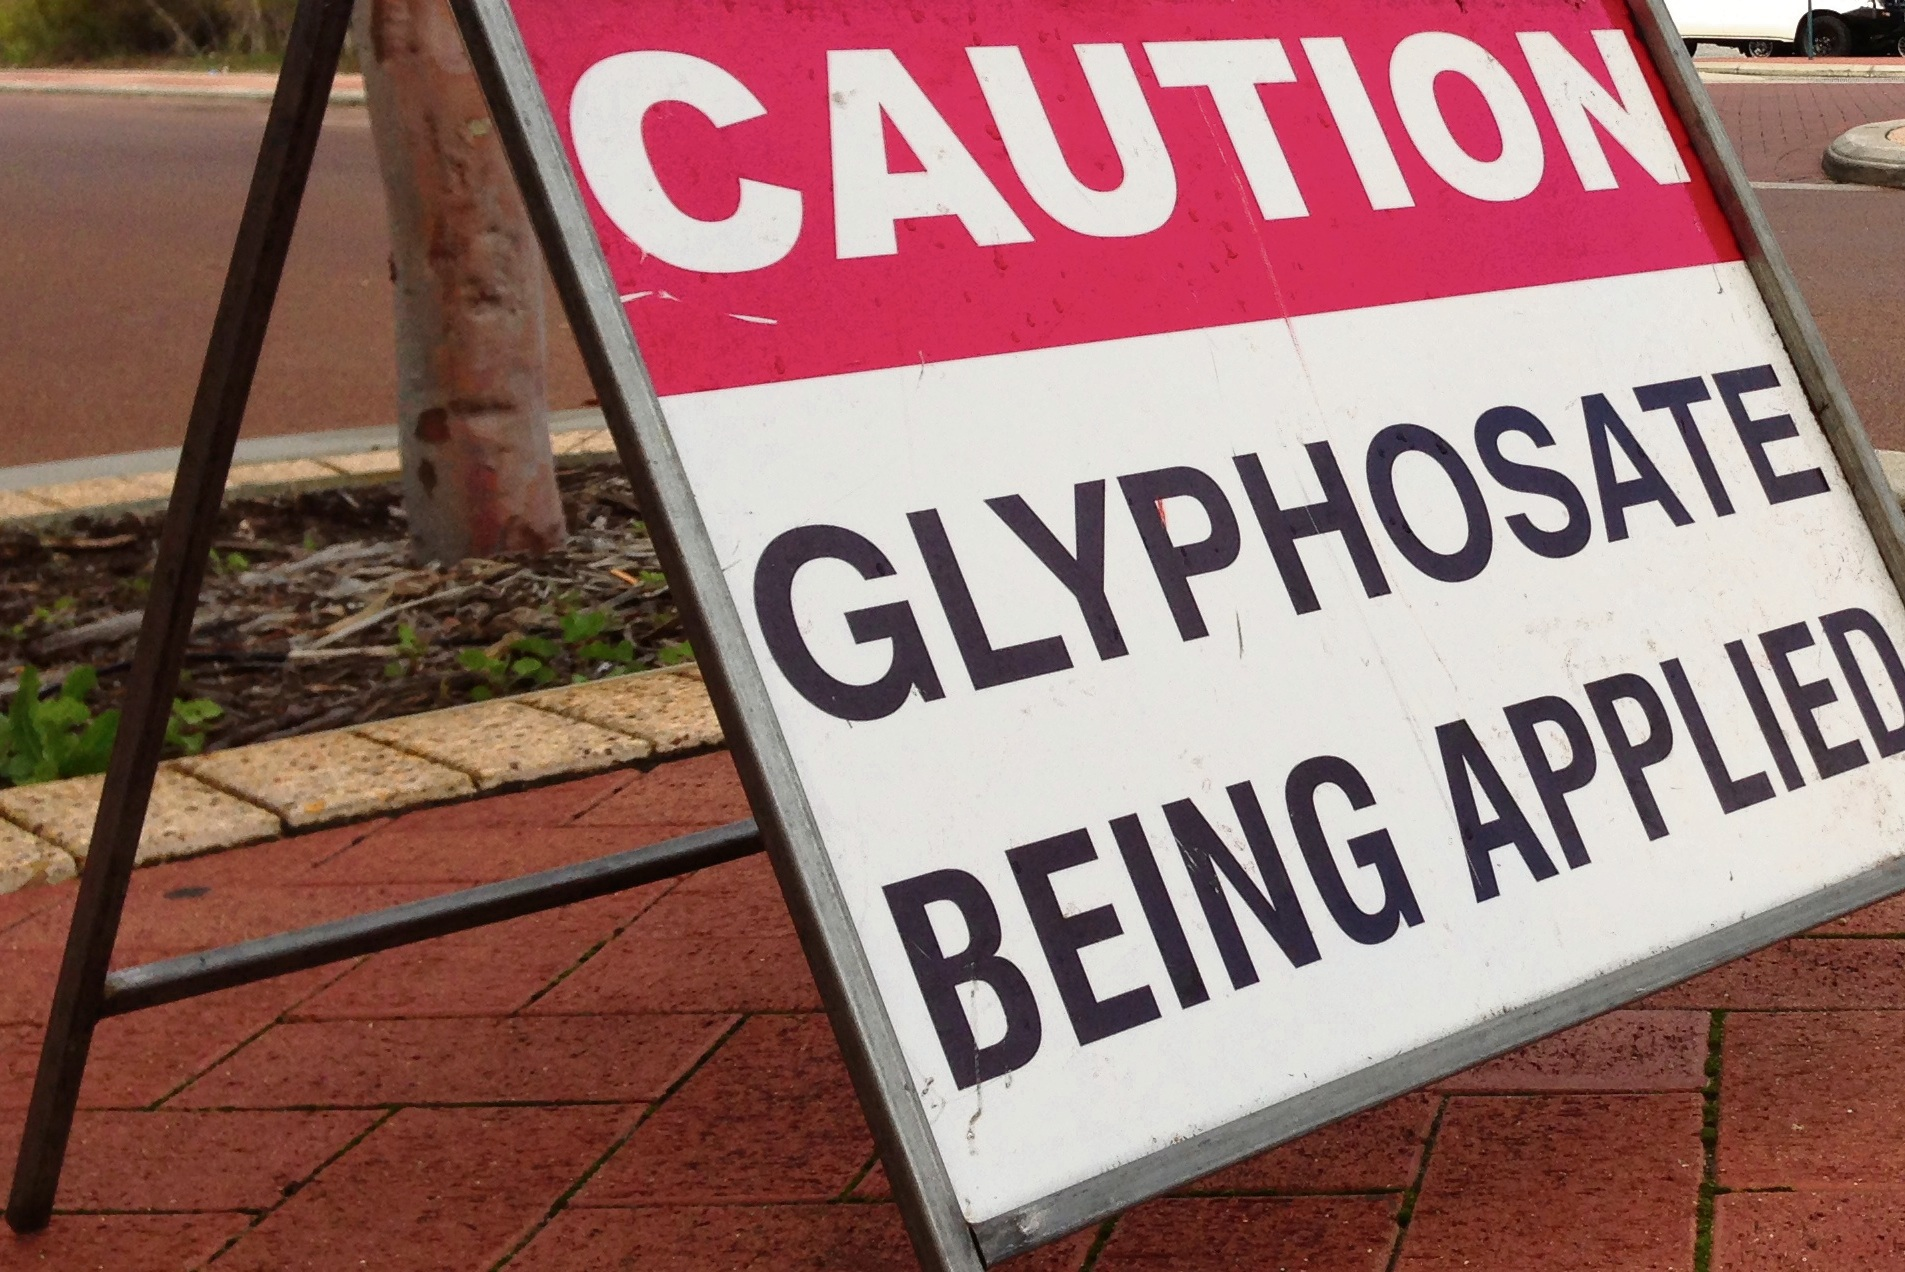 Mundaring and Kalamunda monitoring research into glyphosate